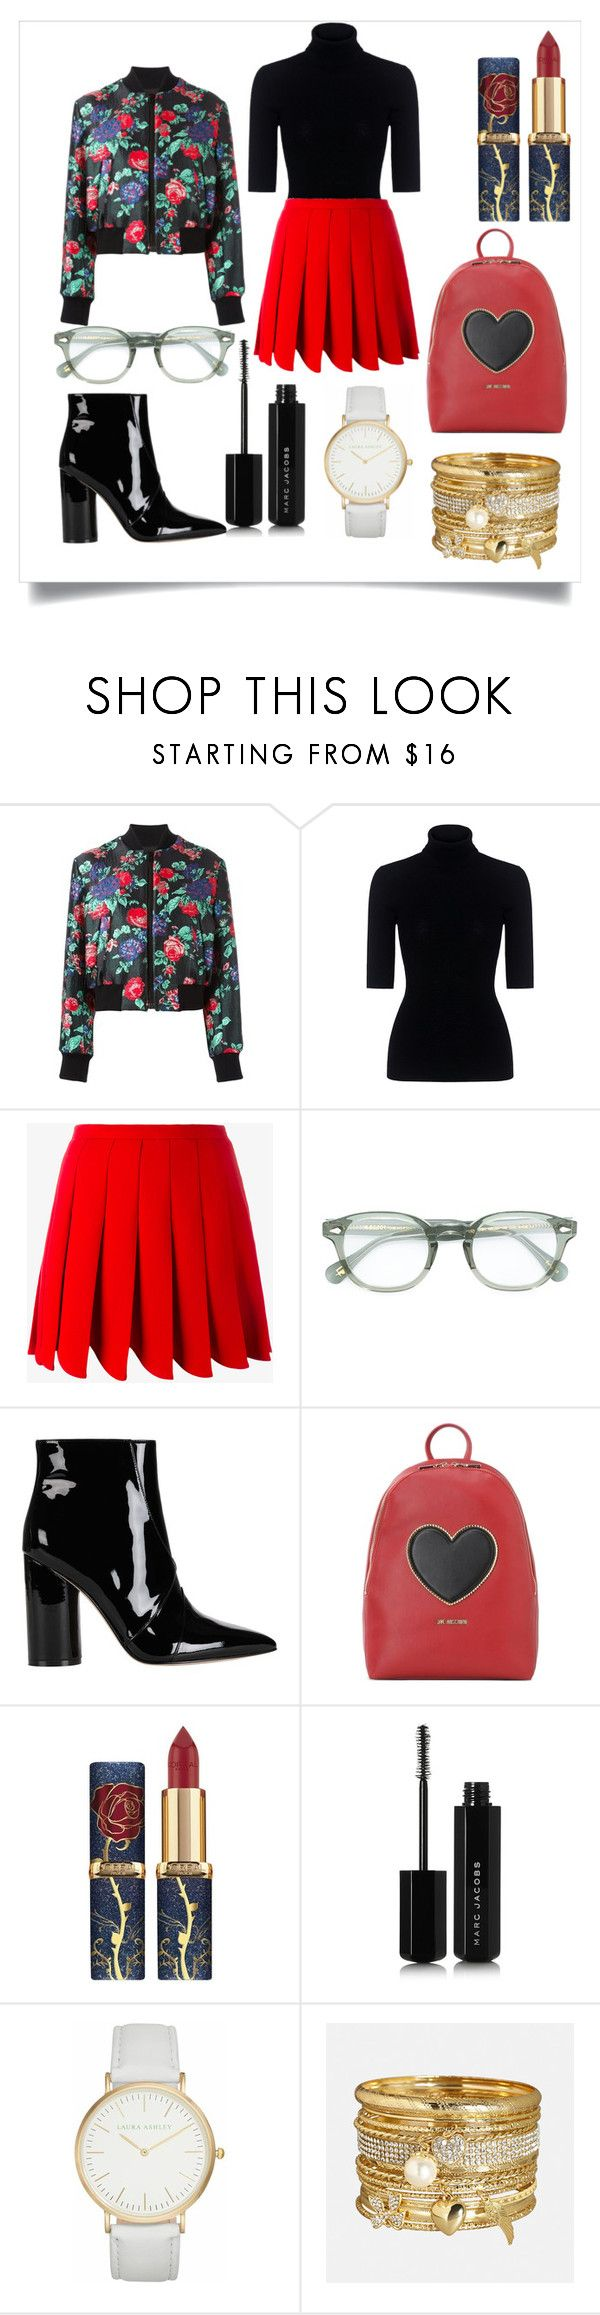 """""""Untitled #304"""" by dolrebeca ❤ liked on Polyvore featuring MSGM, Marissa Webb, Miu Miu, Moscot, Sigerson Morrison, Love Moschino, Marc Jacobs, Laura Ashley and Avenue"""